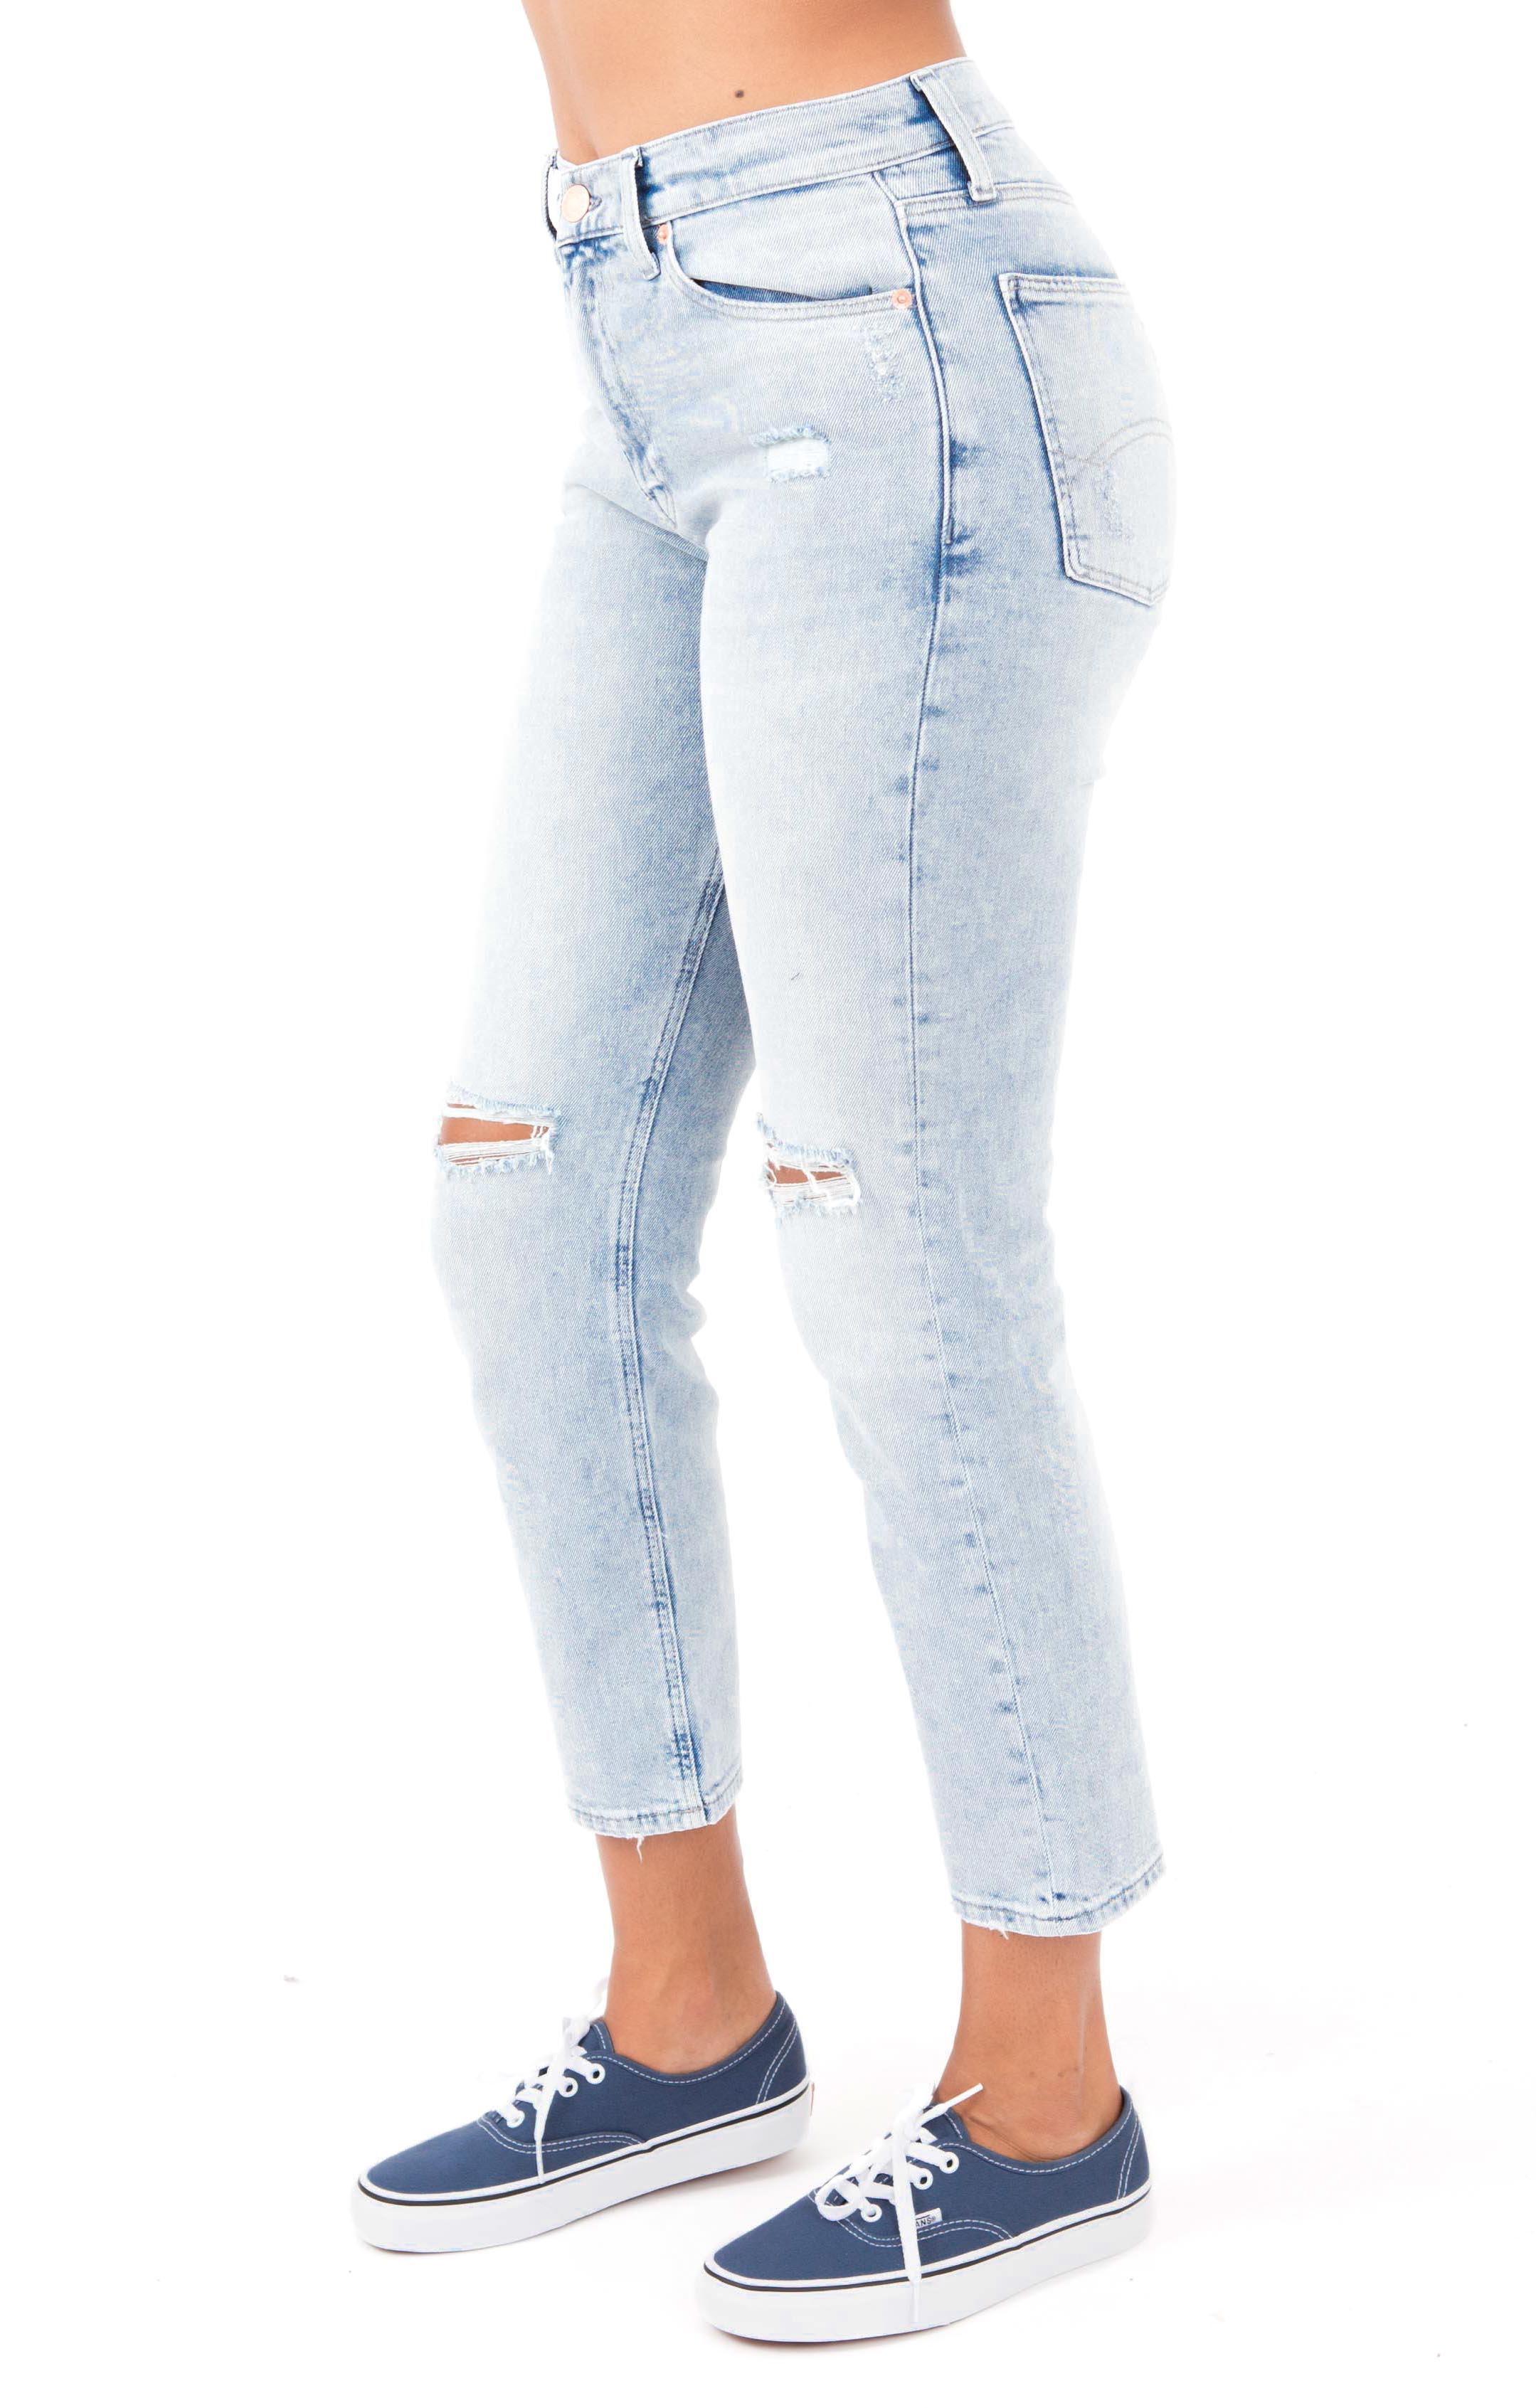 (DW04747) 1991 High Rise Straight Fit Jean - Flanders Light Blue